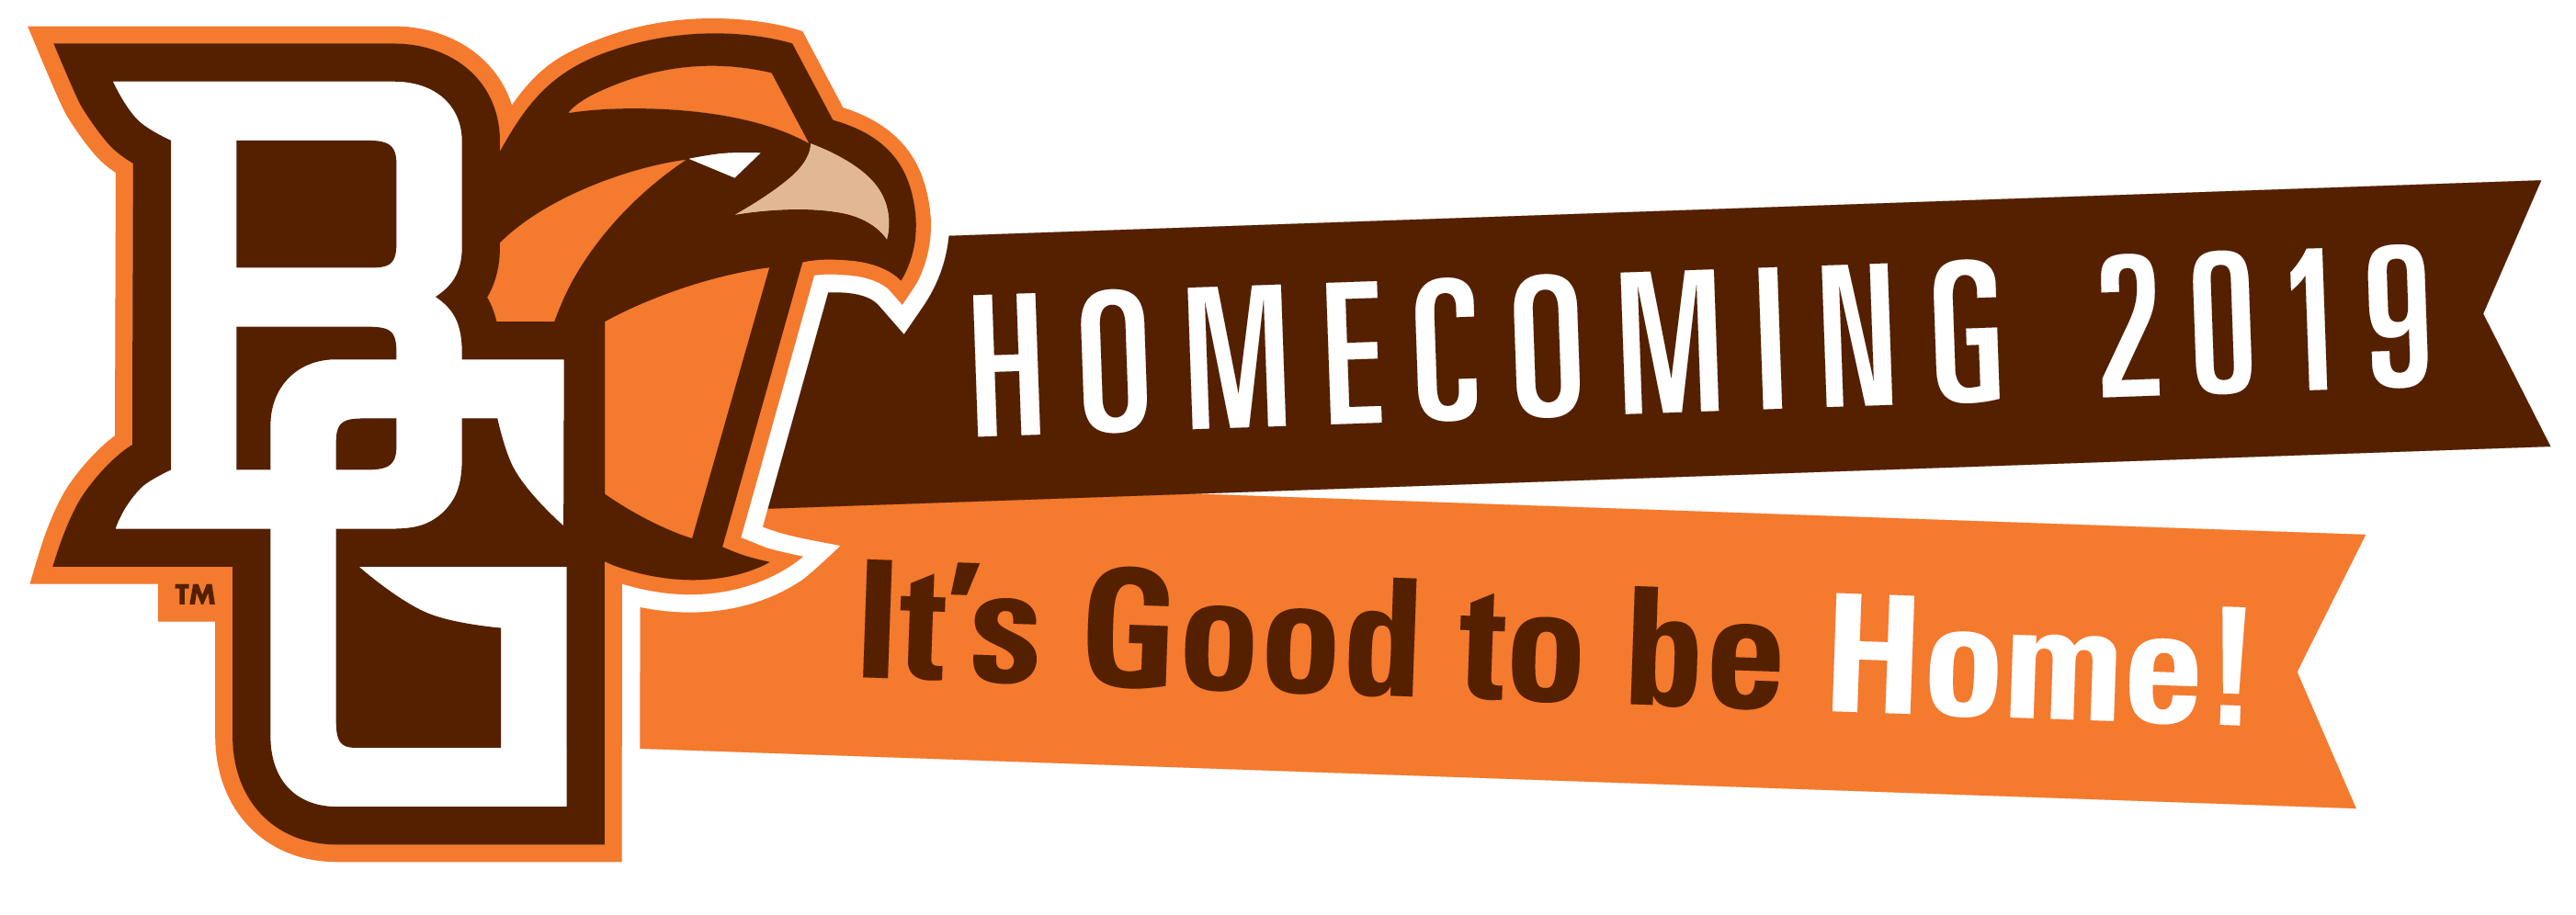 BGSU Homecoming 2019